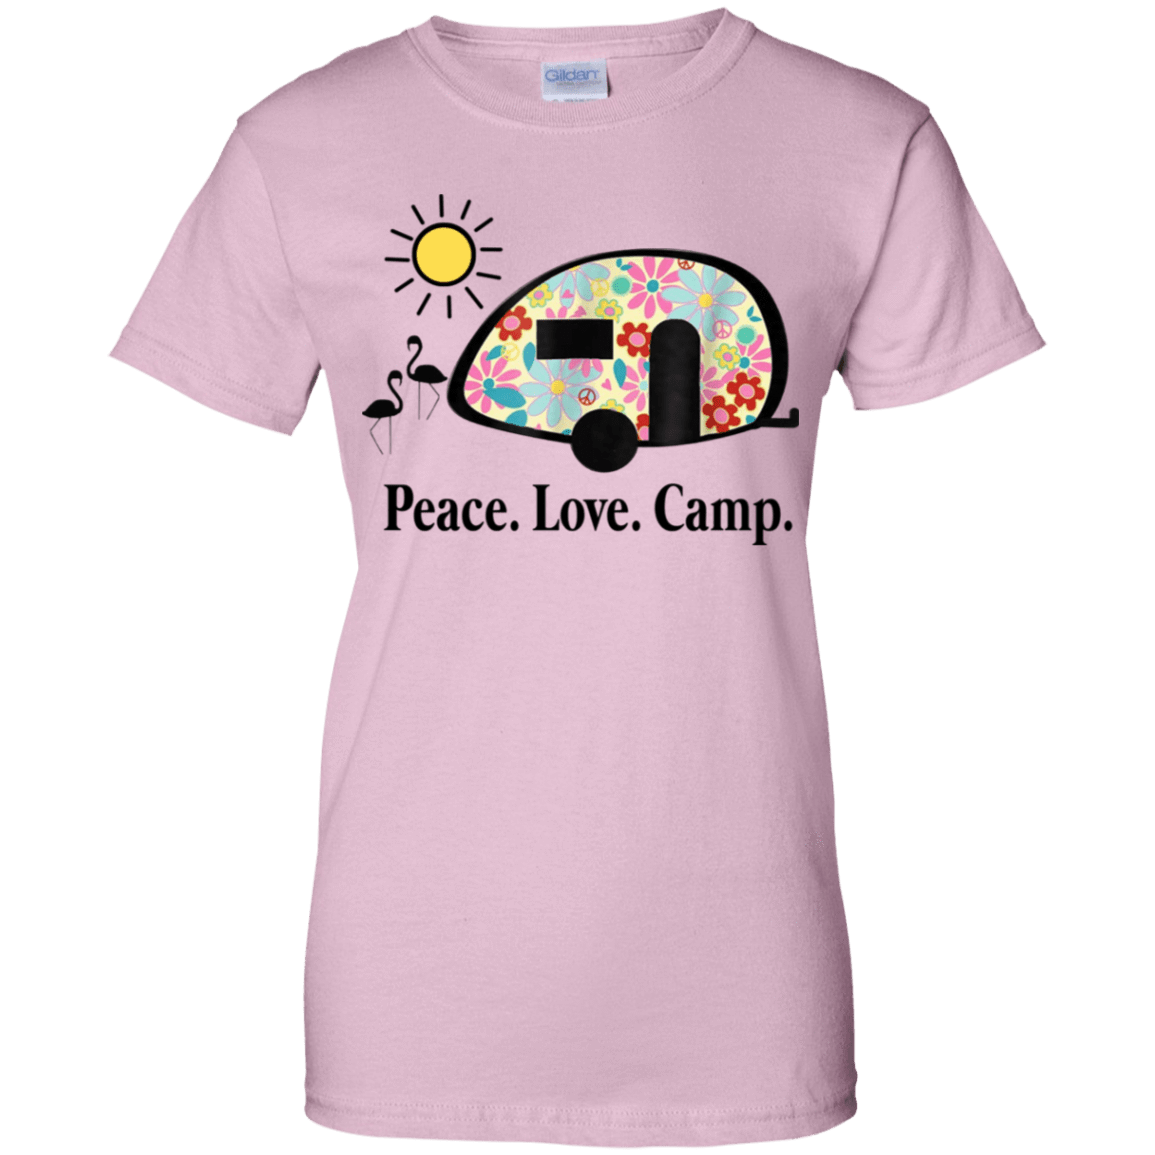 Peace. Love. Camp. Camping 939-9258-73889466-44786 - Tee Ript